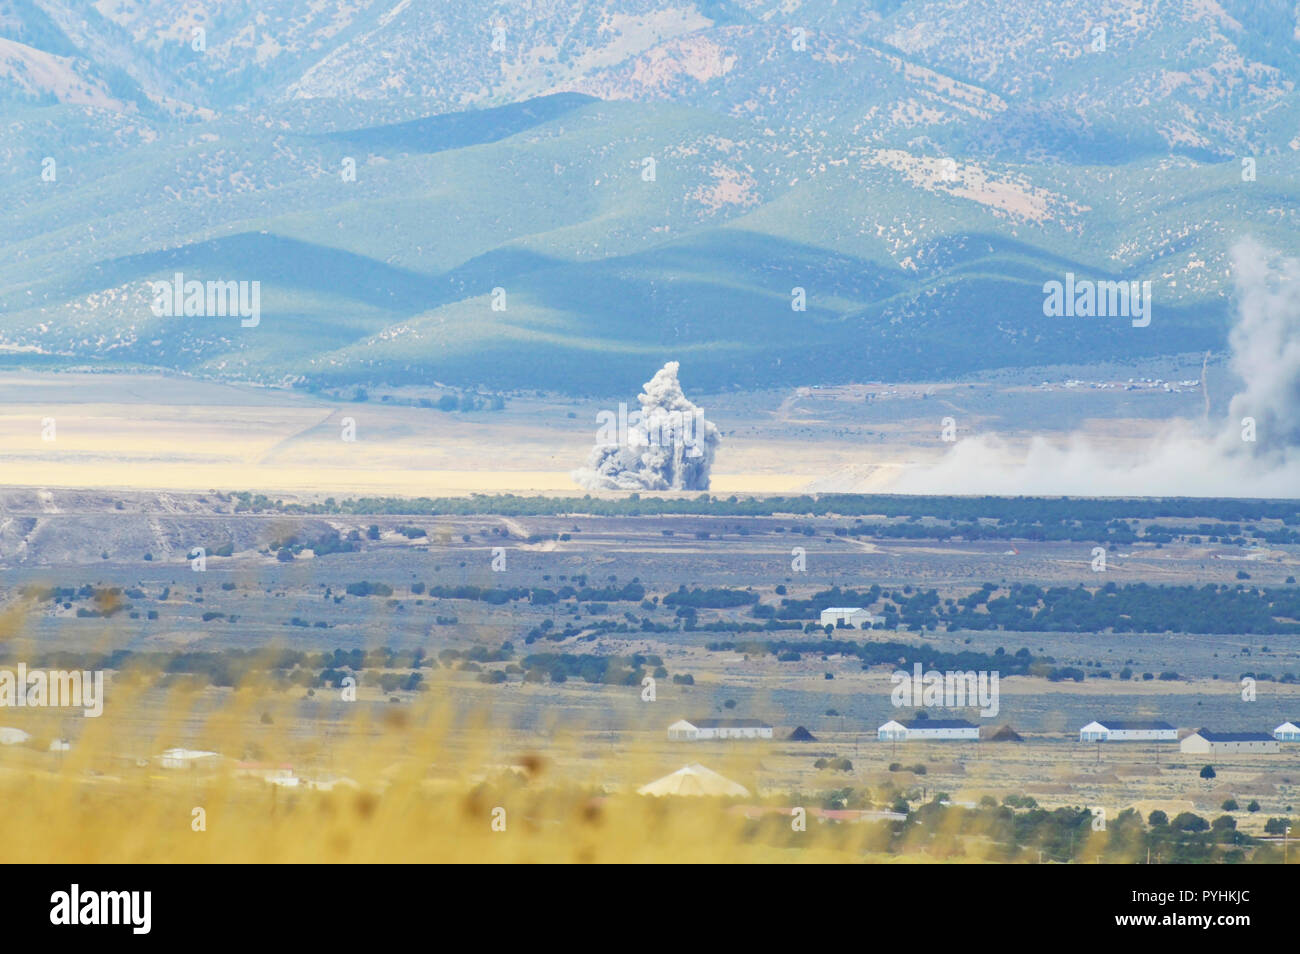 Munition Testing in the mountains of Tooele, Utah. - Stock Image